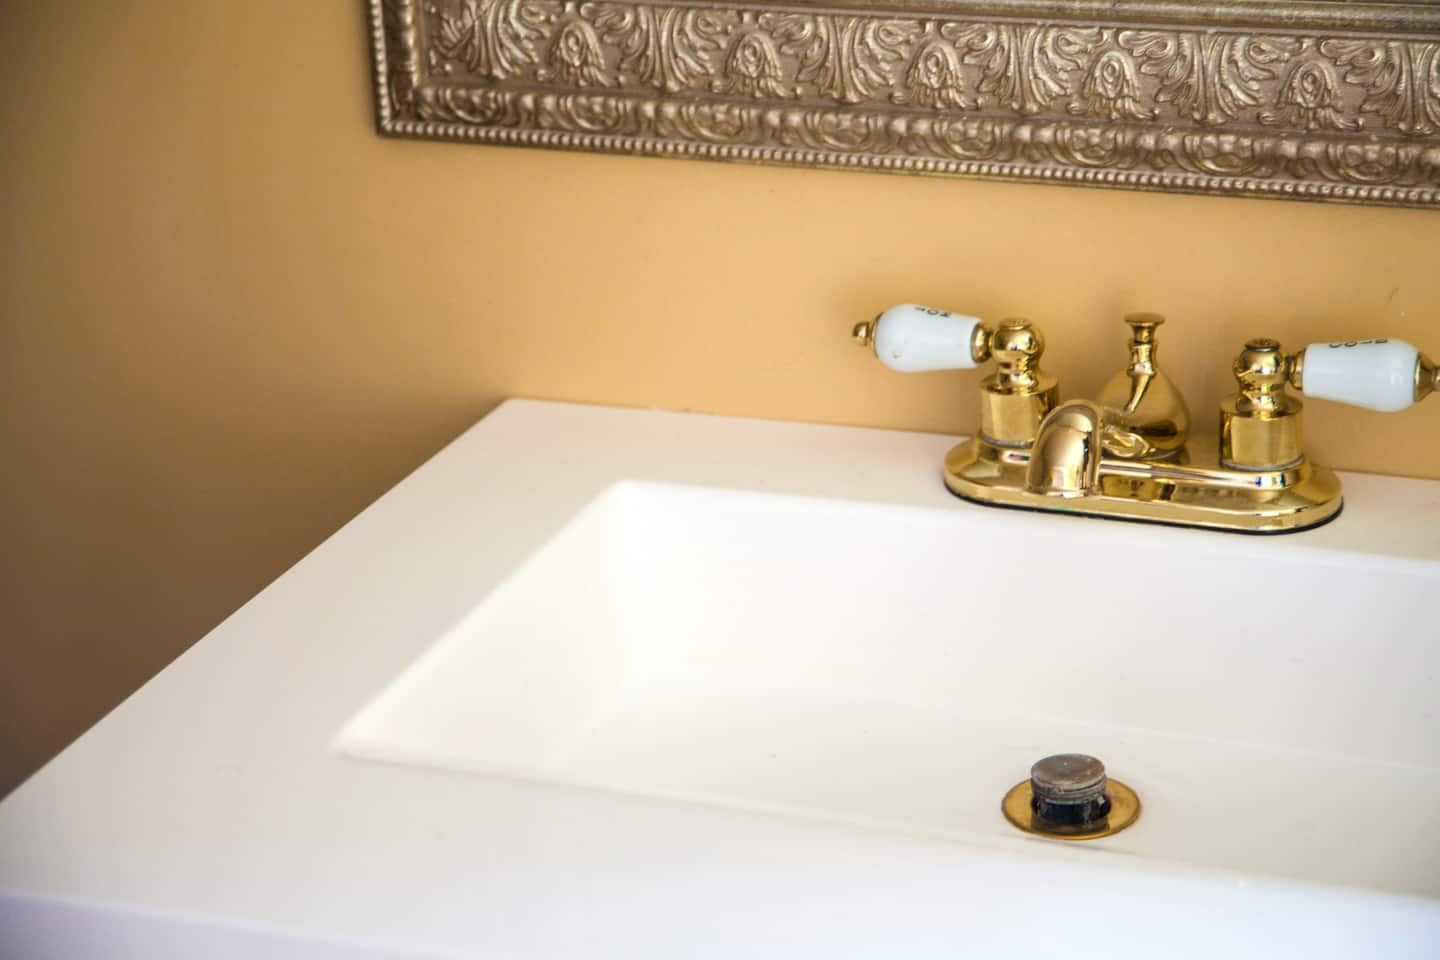 Bathroom Faucets Under $100 bathroom faucets & fixtures | angie's list